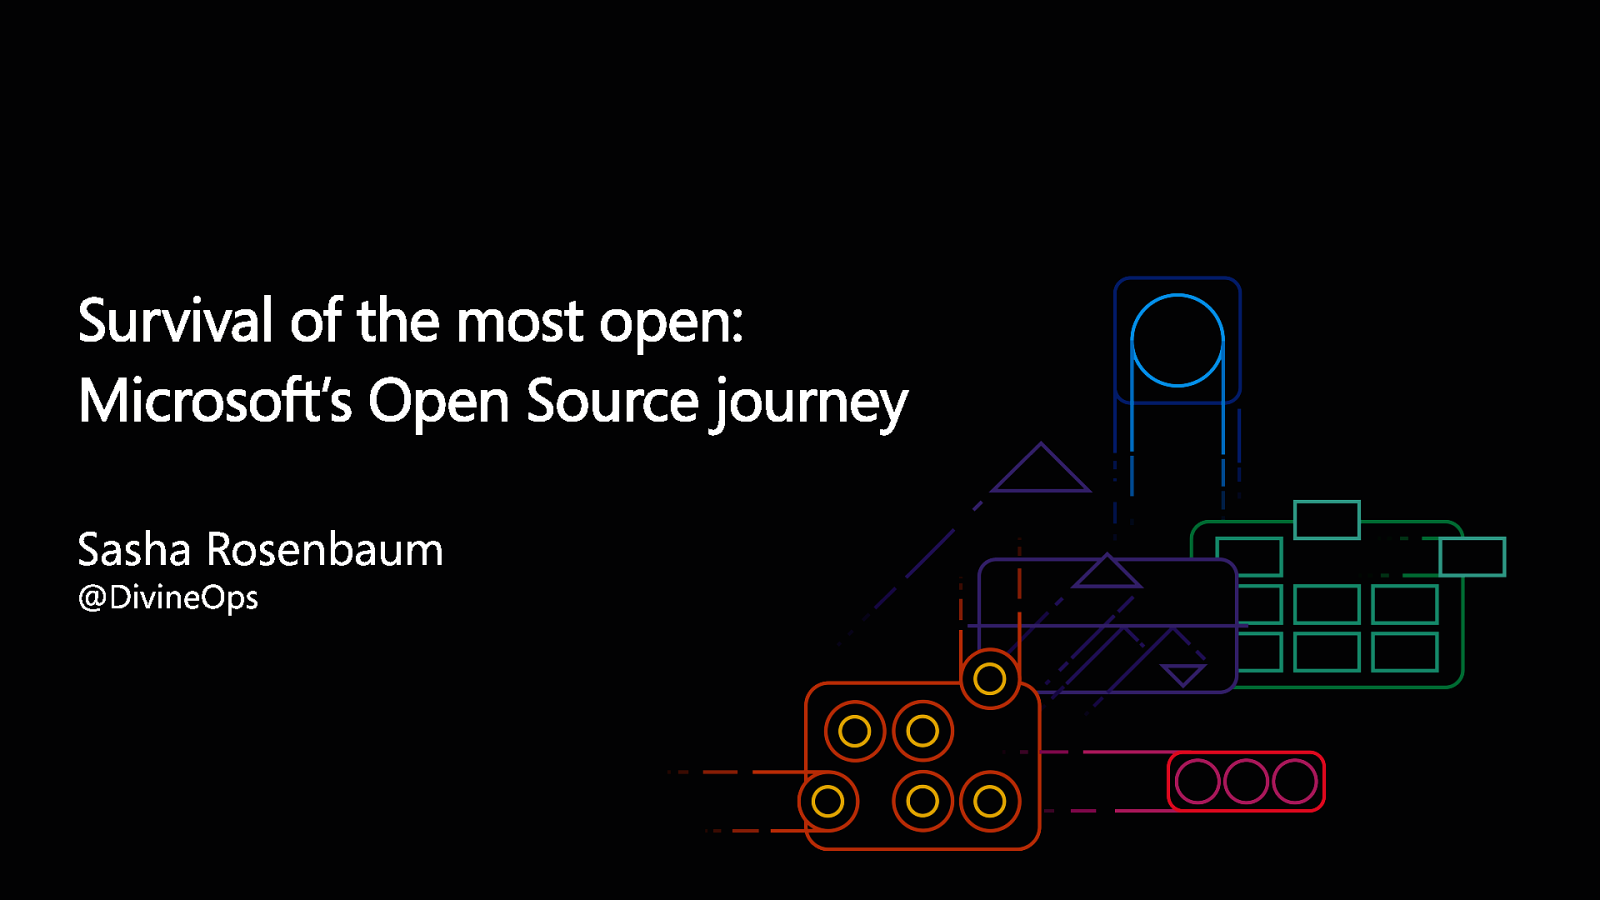 Survival of the most open: Microsoft's Open Source Journey